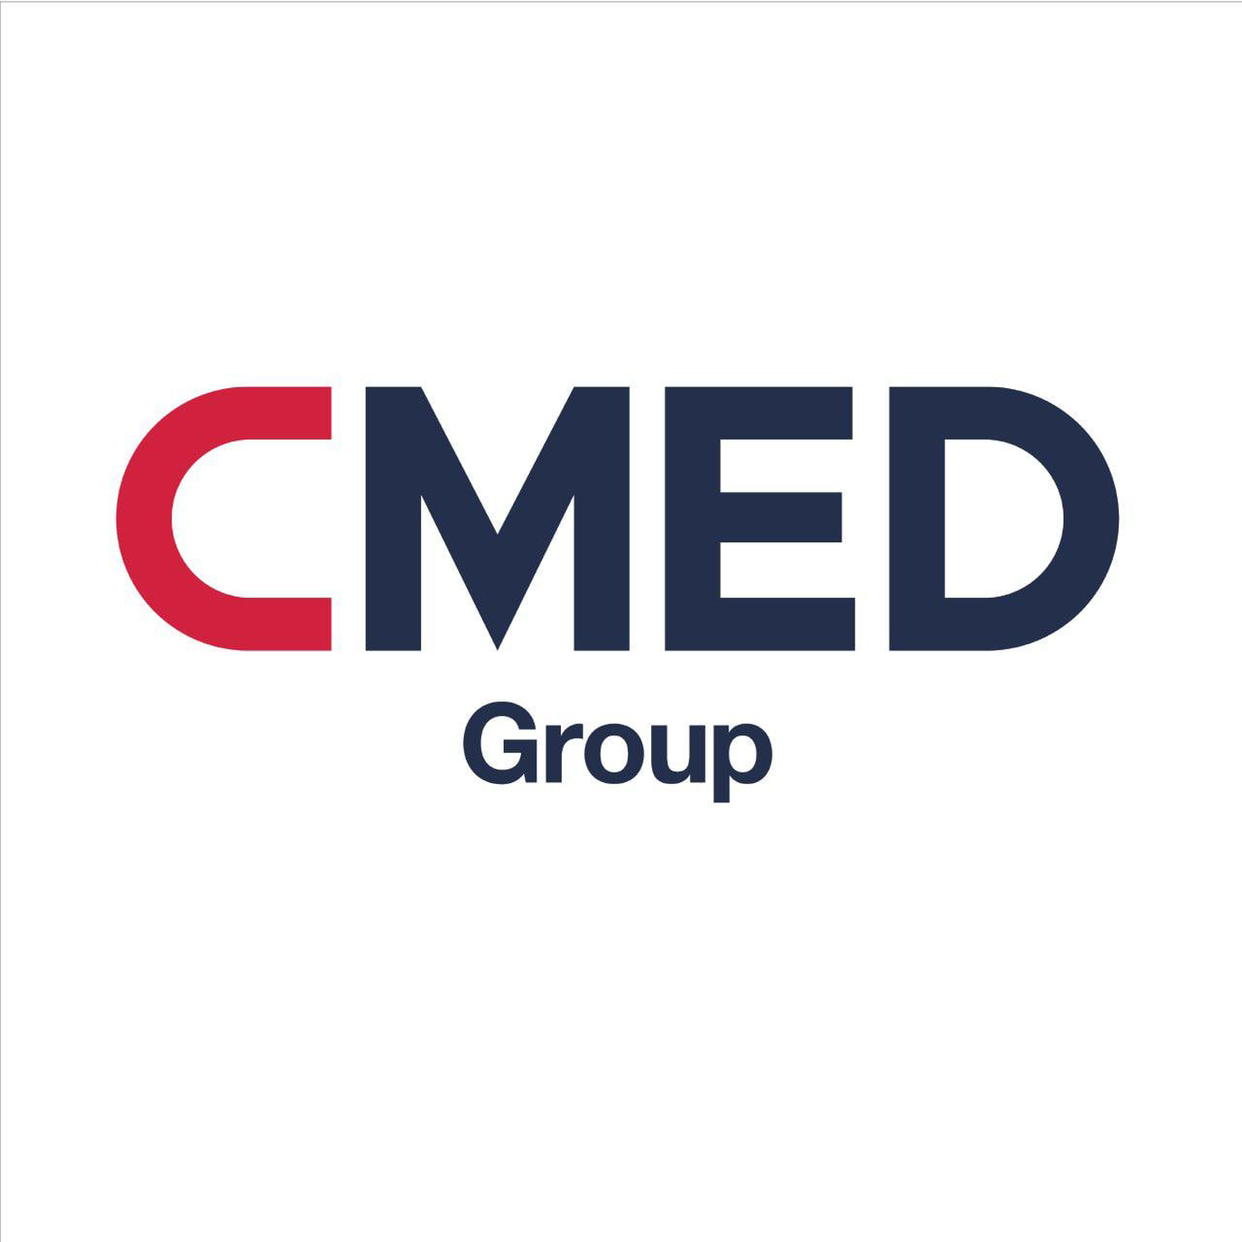 CMED Group